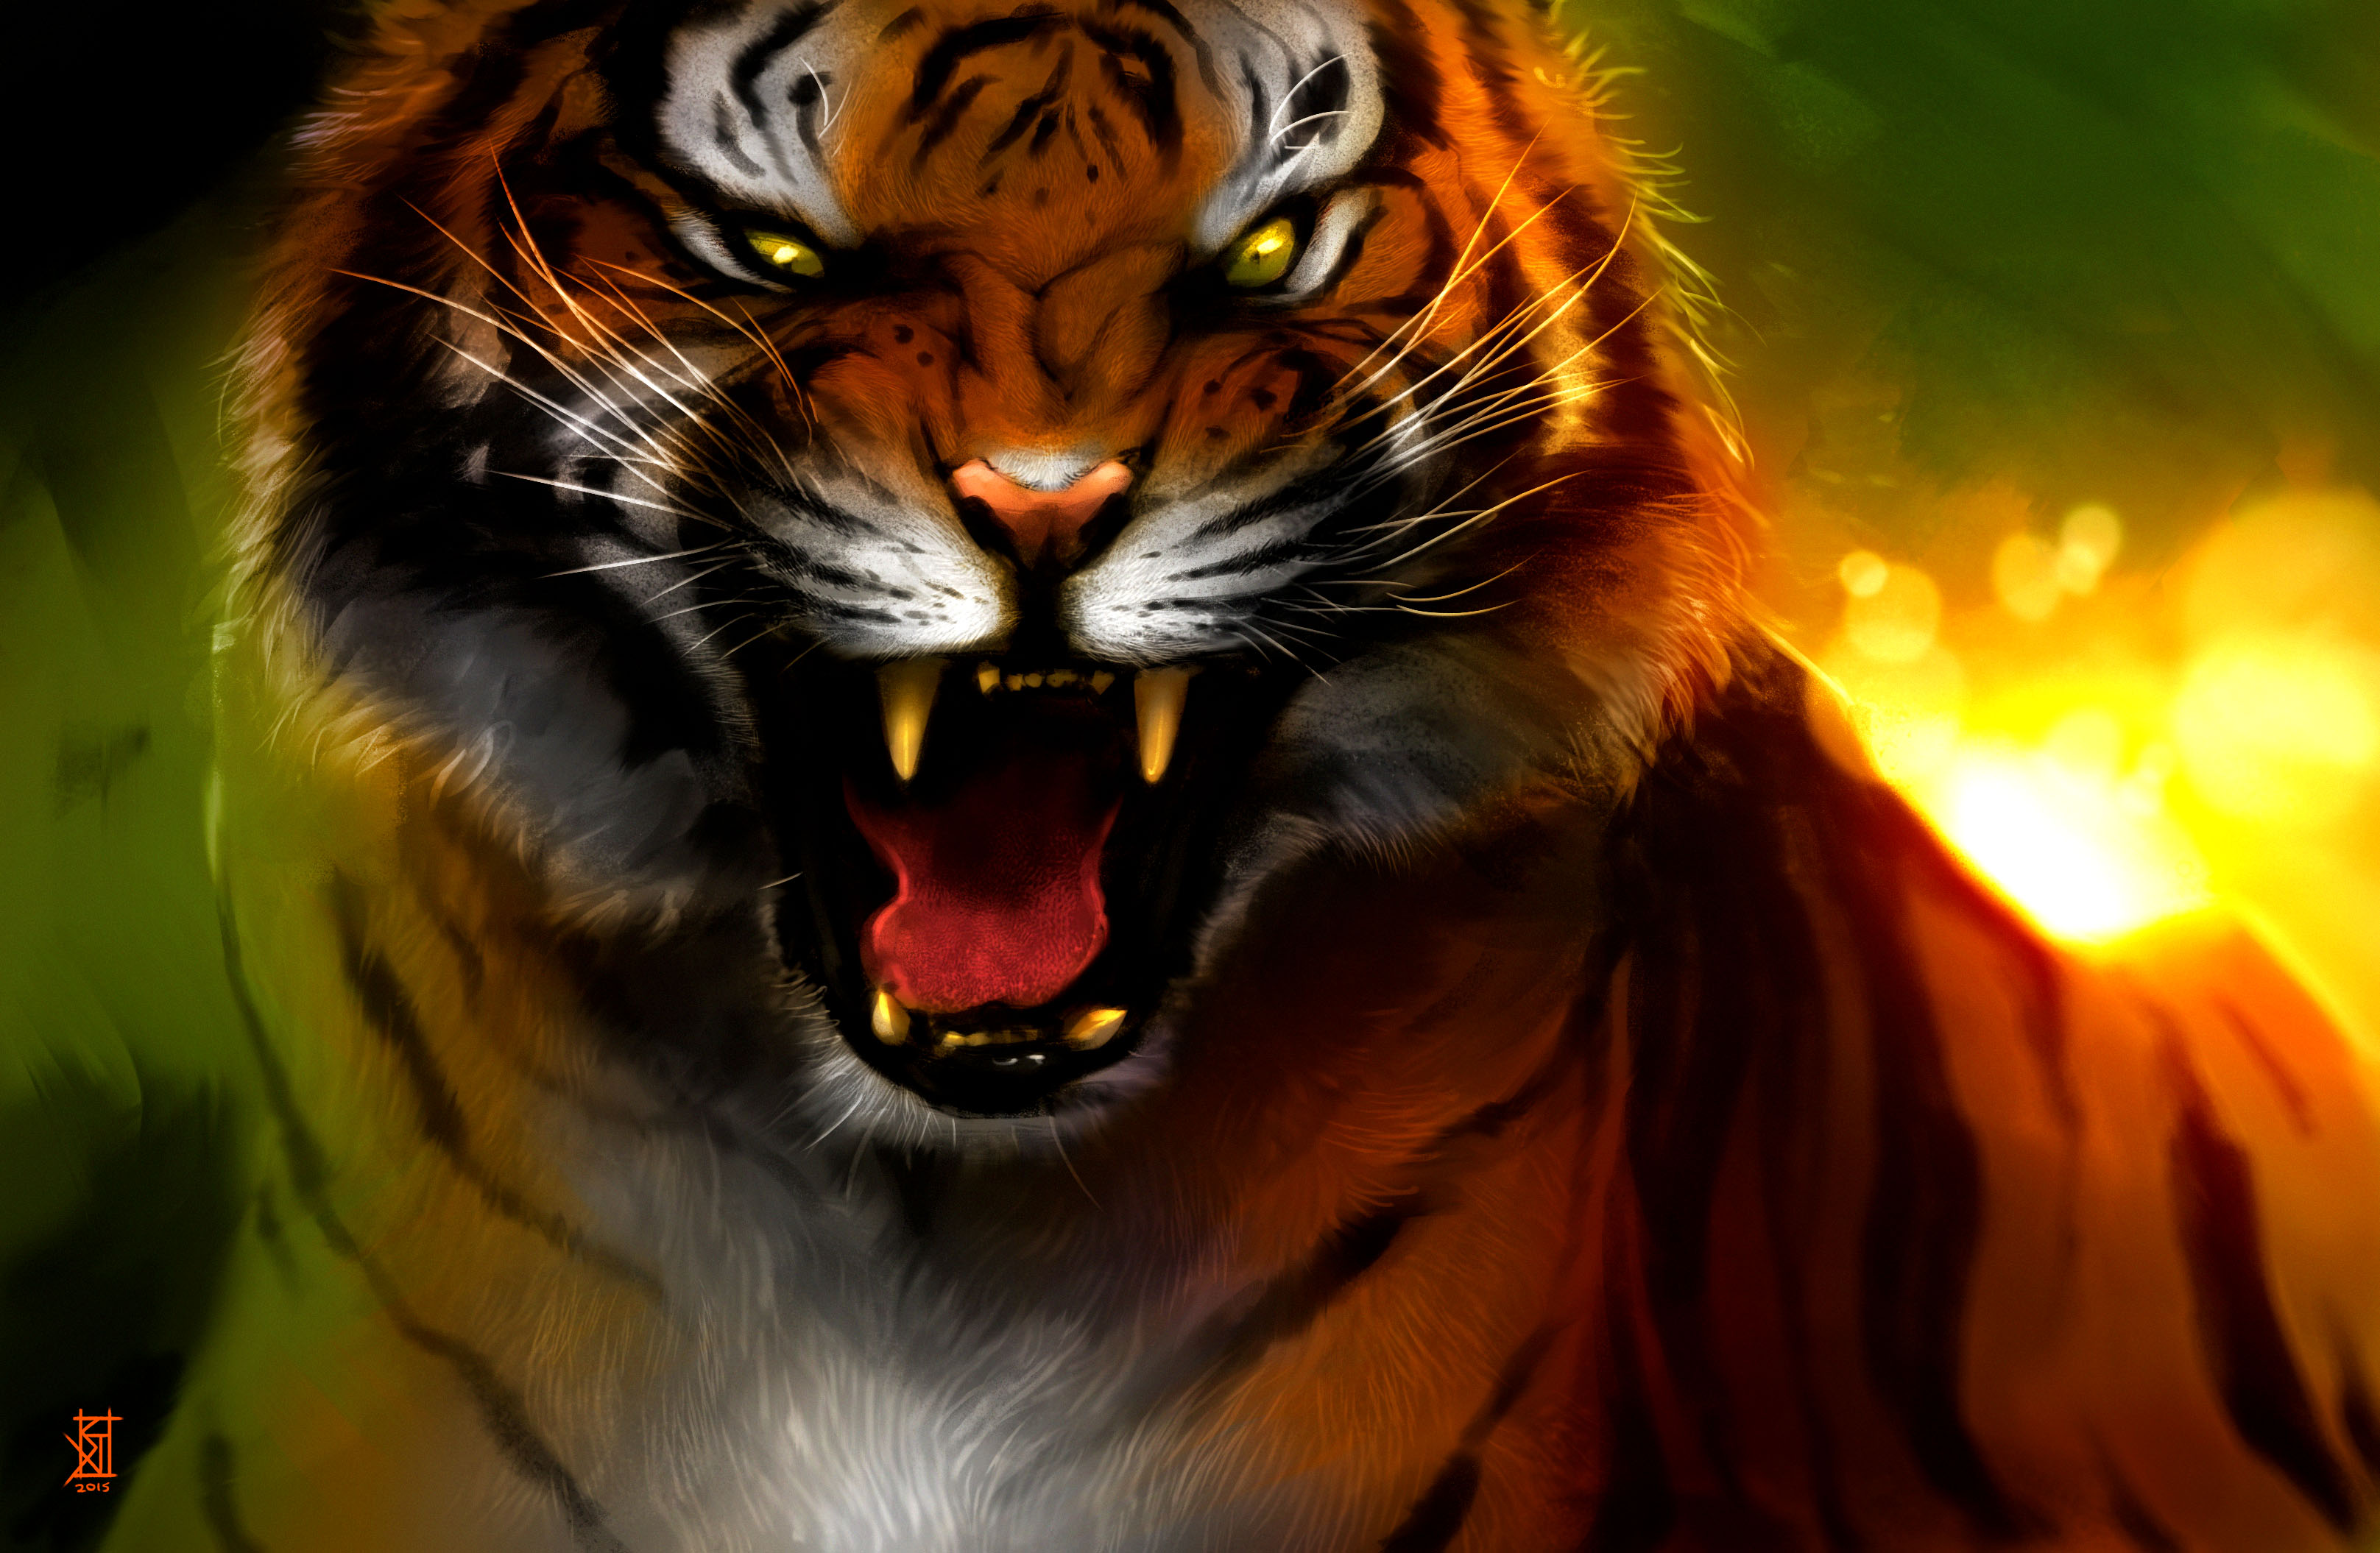 Angry snarling tiger HD Wallpaper | Background Image ...